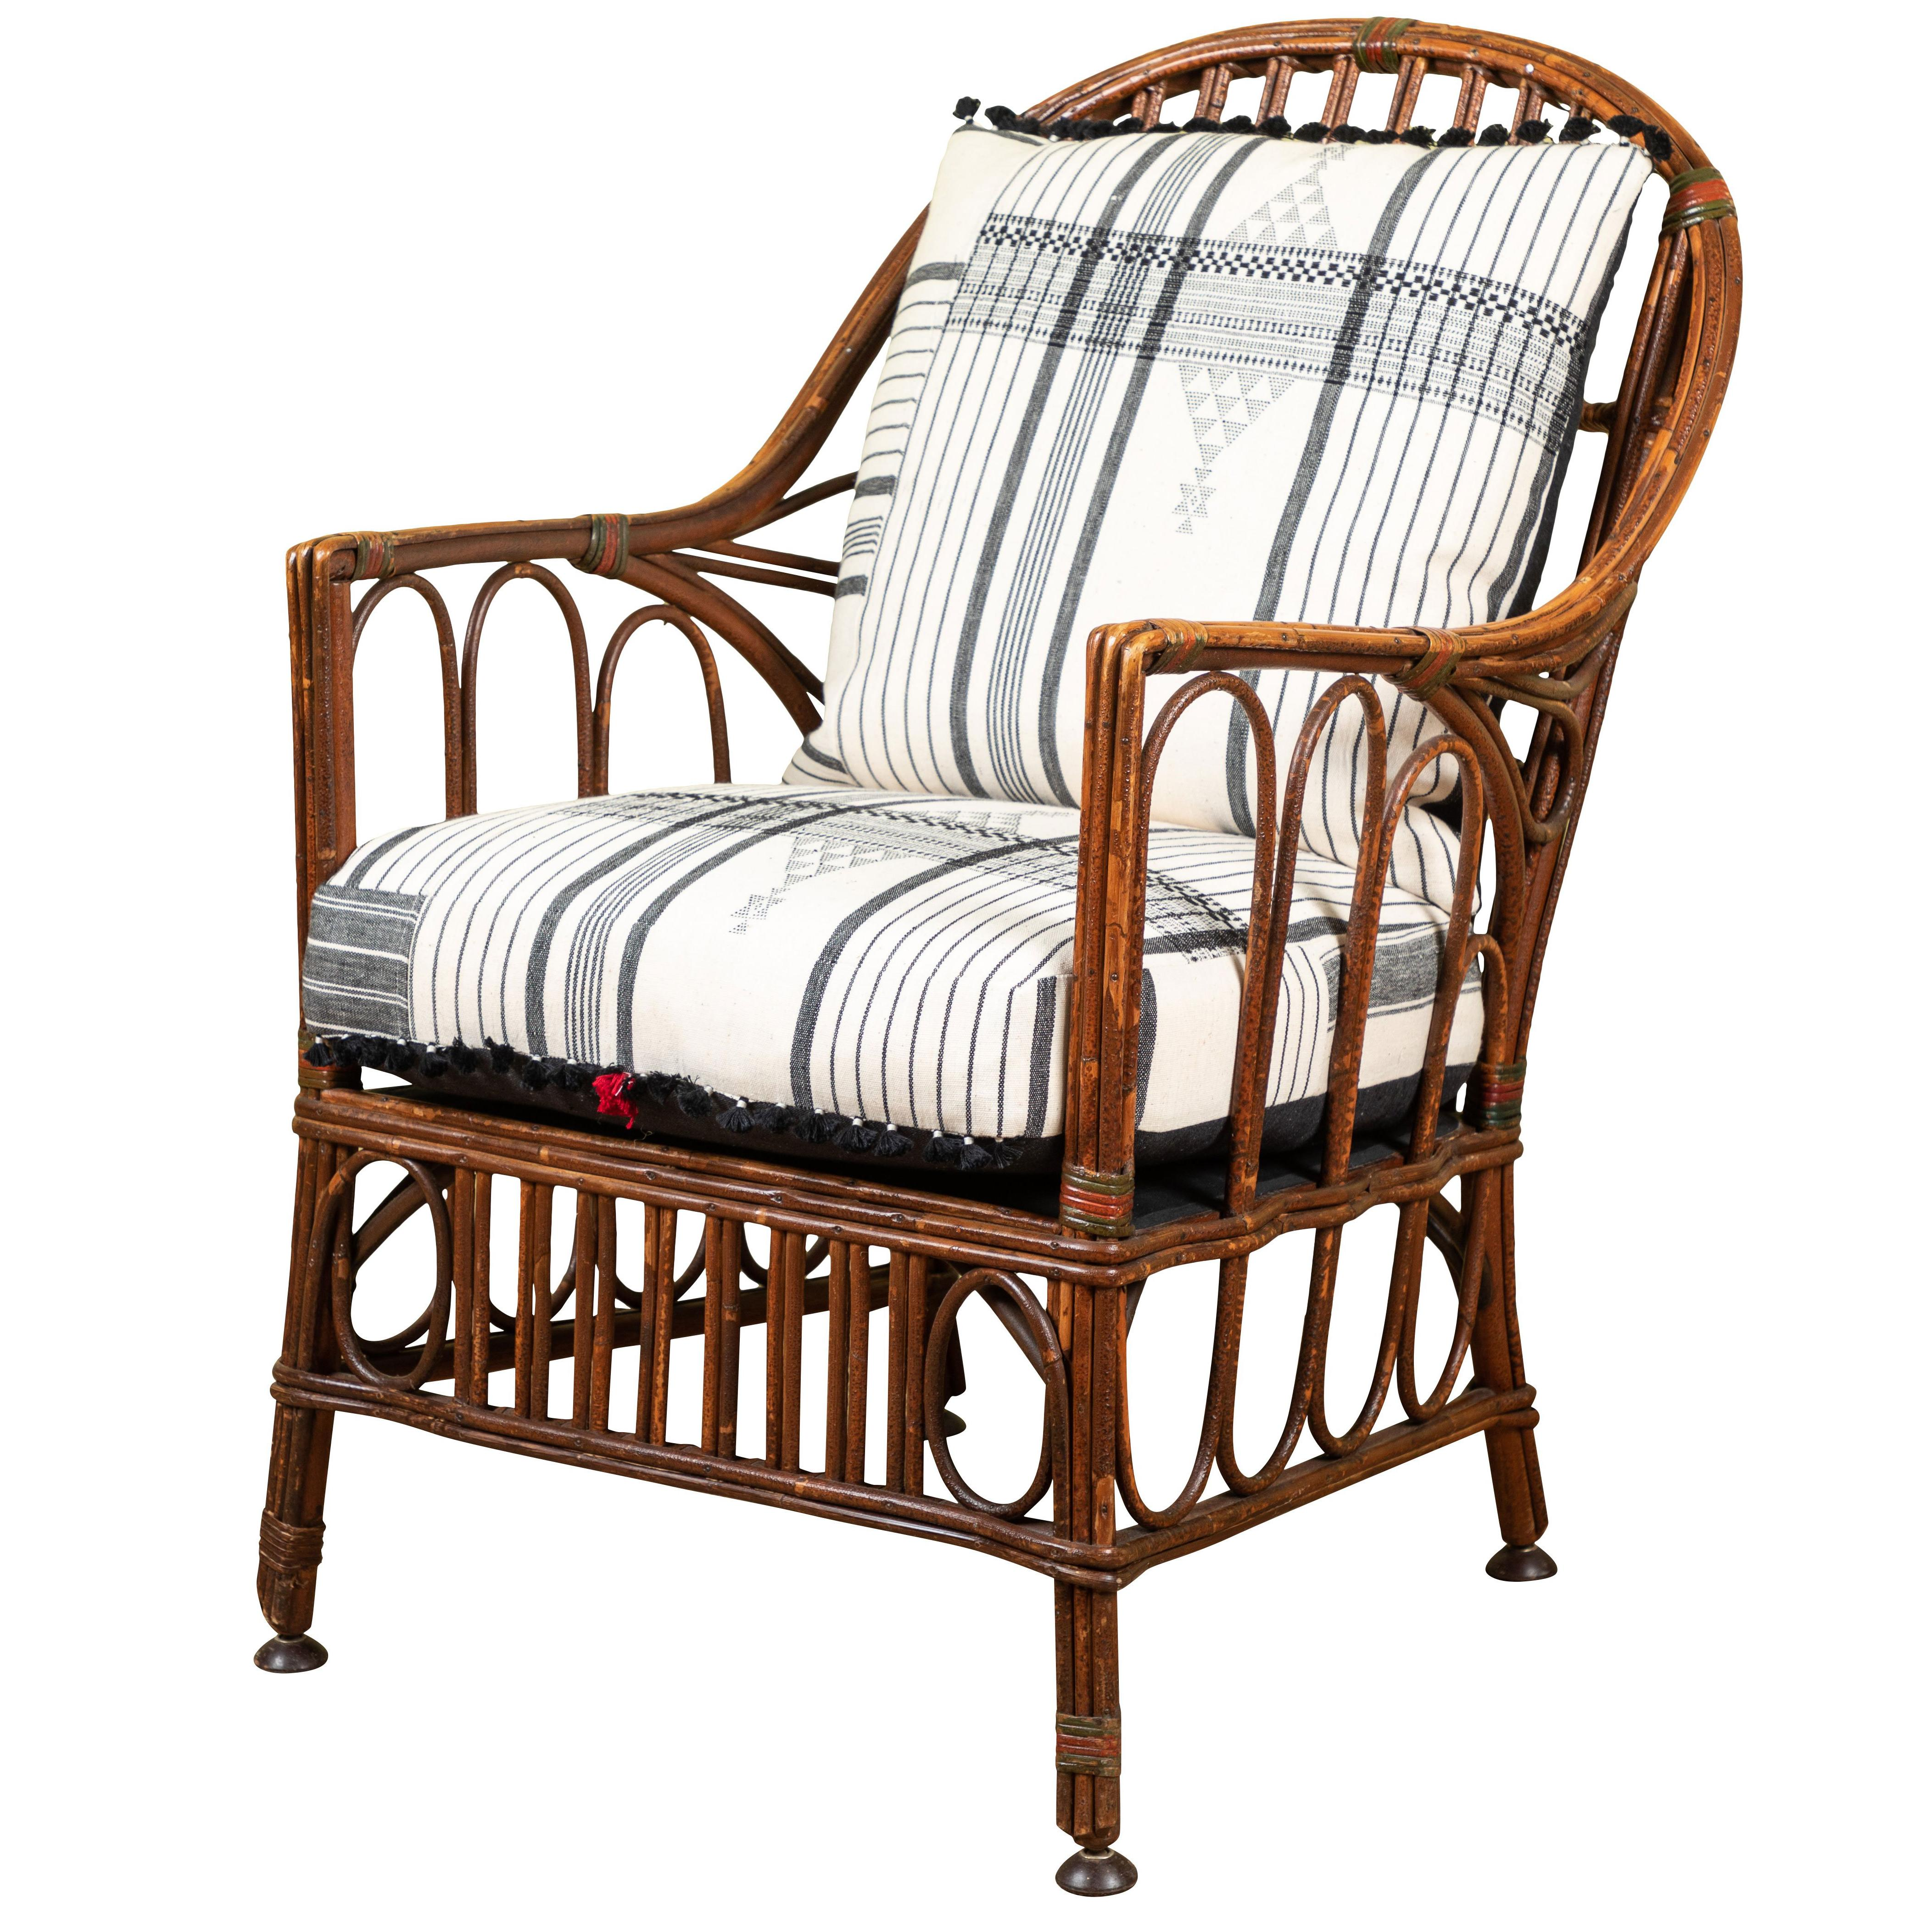 Wood Rocking Chair 1920s Bent Wood Rocking Chair With Injiri Upholstery